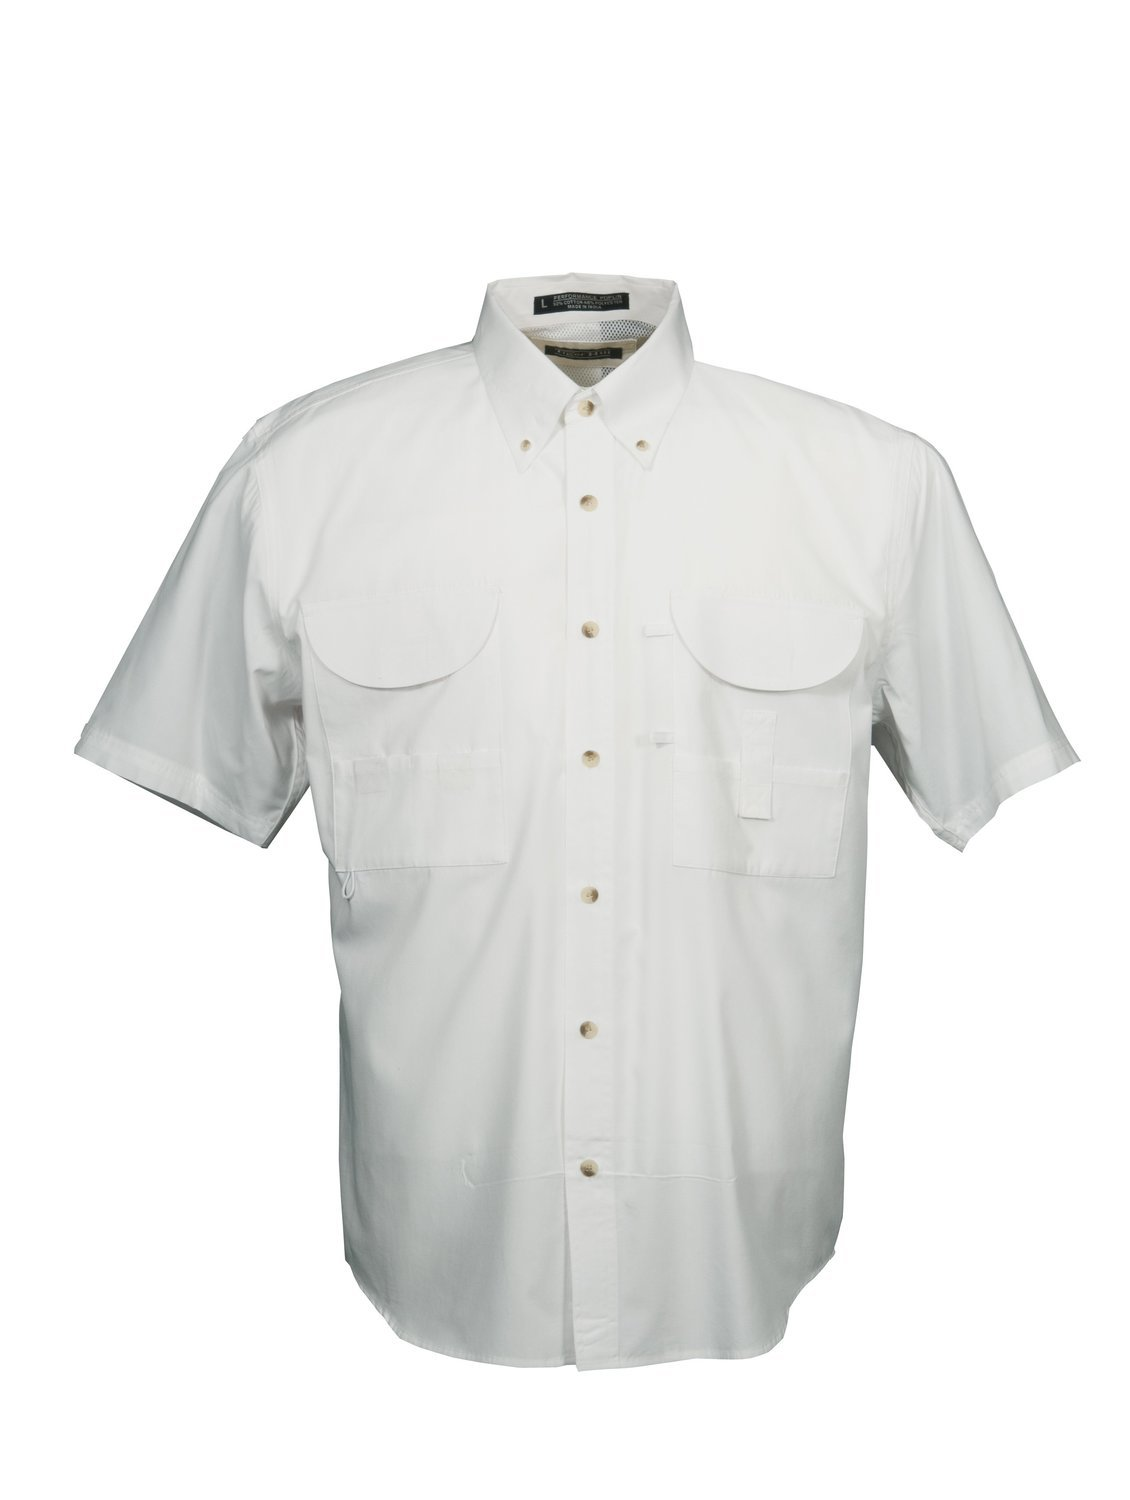 Tiger Hill Men's Fishing Shirt Short Sleeves White